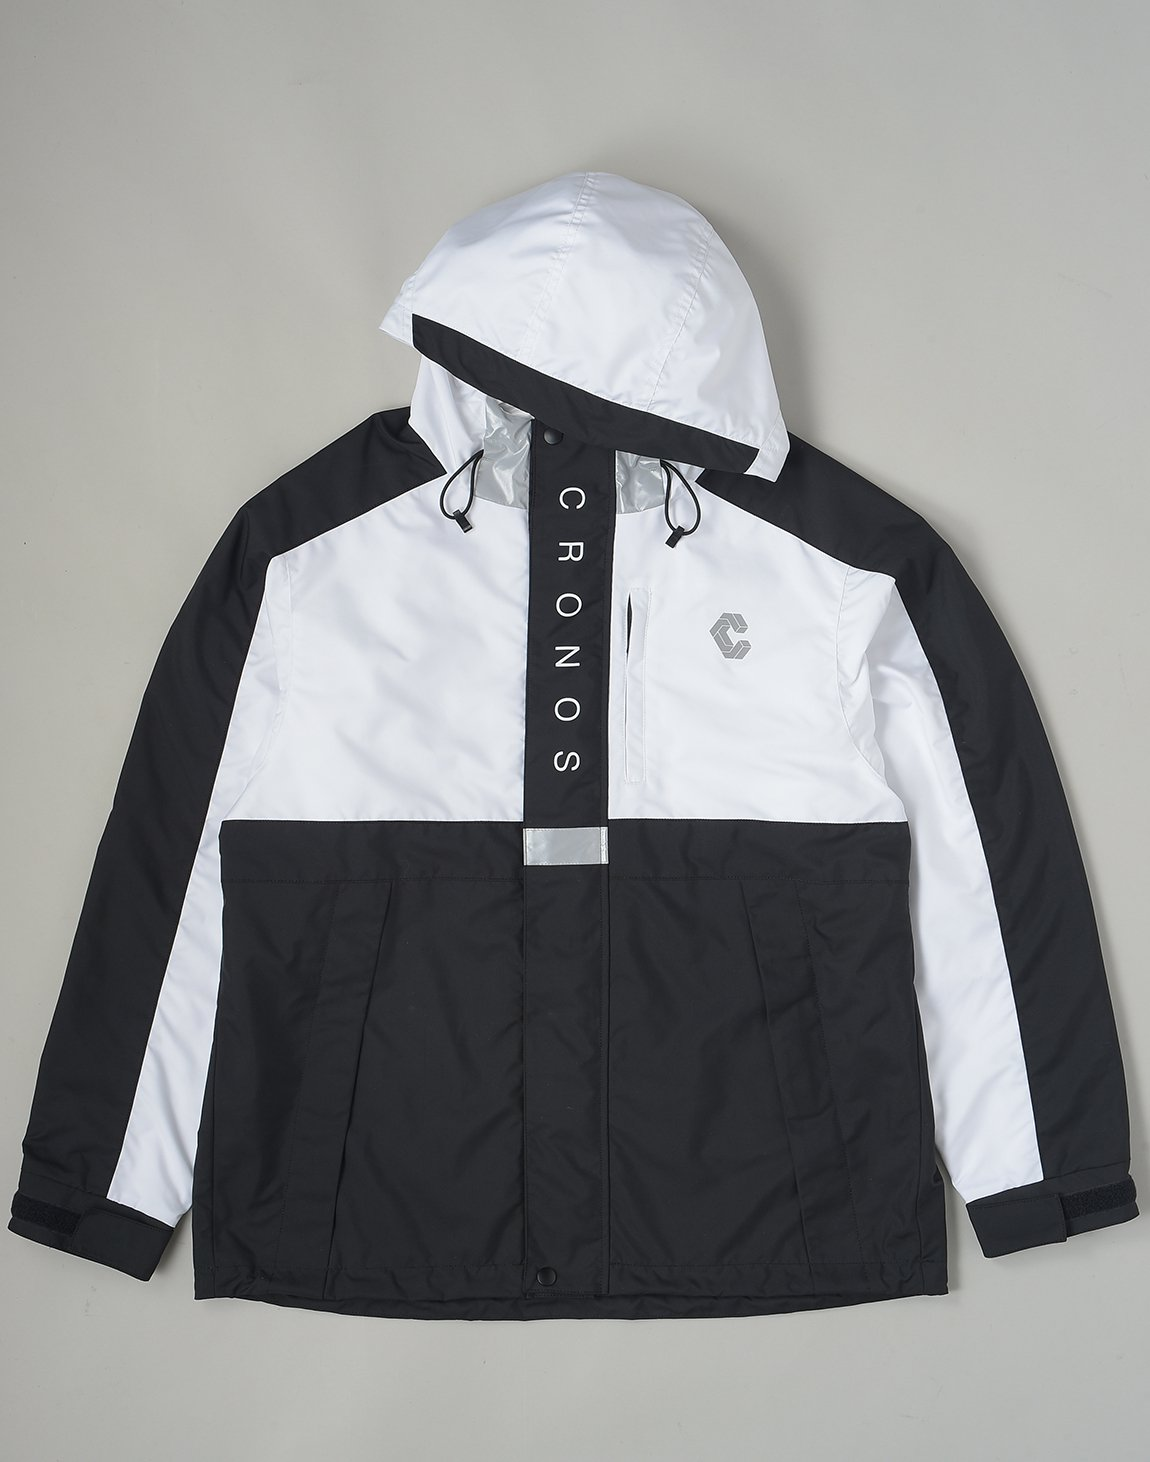 <img class='new_mark_img1' src='https://img.shop-pro.jp/img/new/icons1.gif' style='border:none;display:inline;margin:0px;padding:0px;width:auto;' />CRONOS WIND JAMMER JACKET【WHITE】